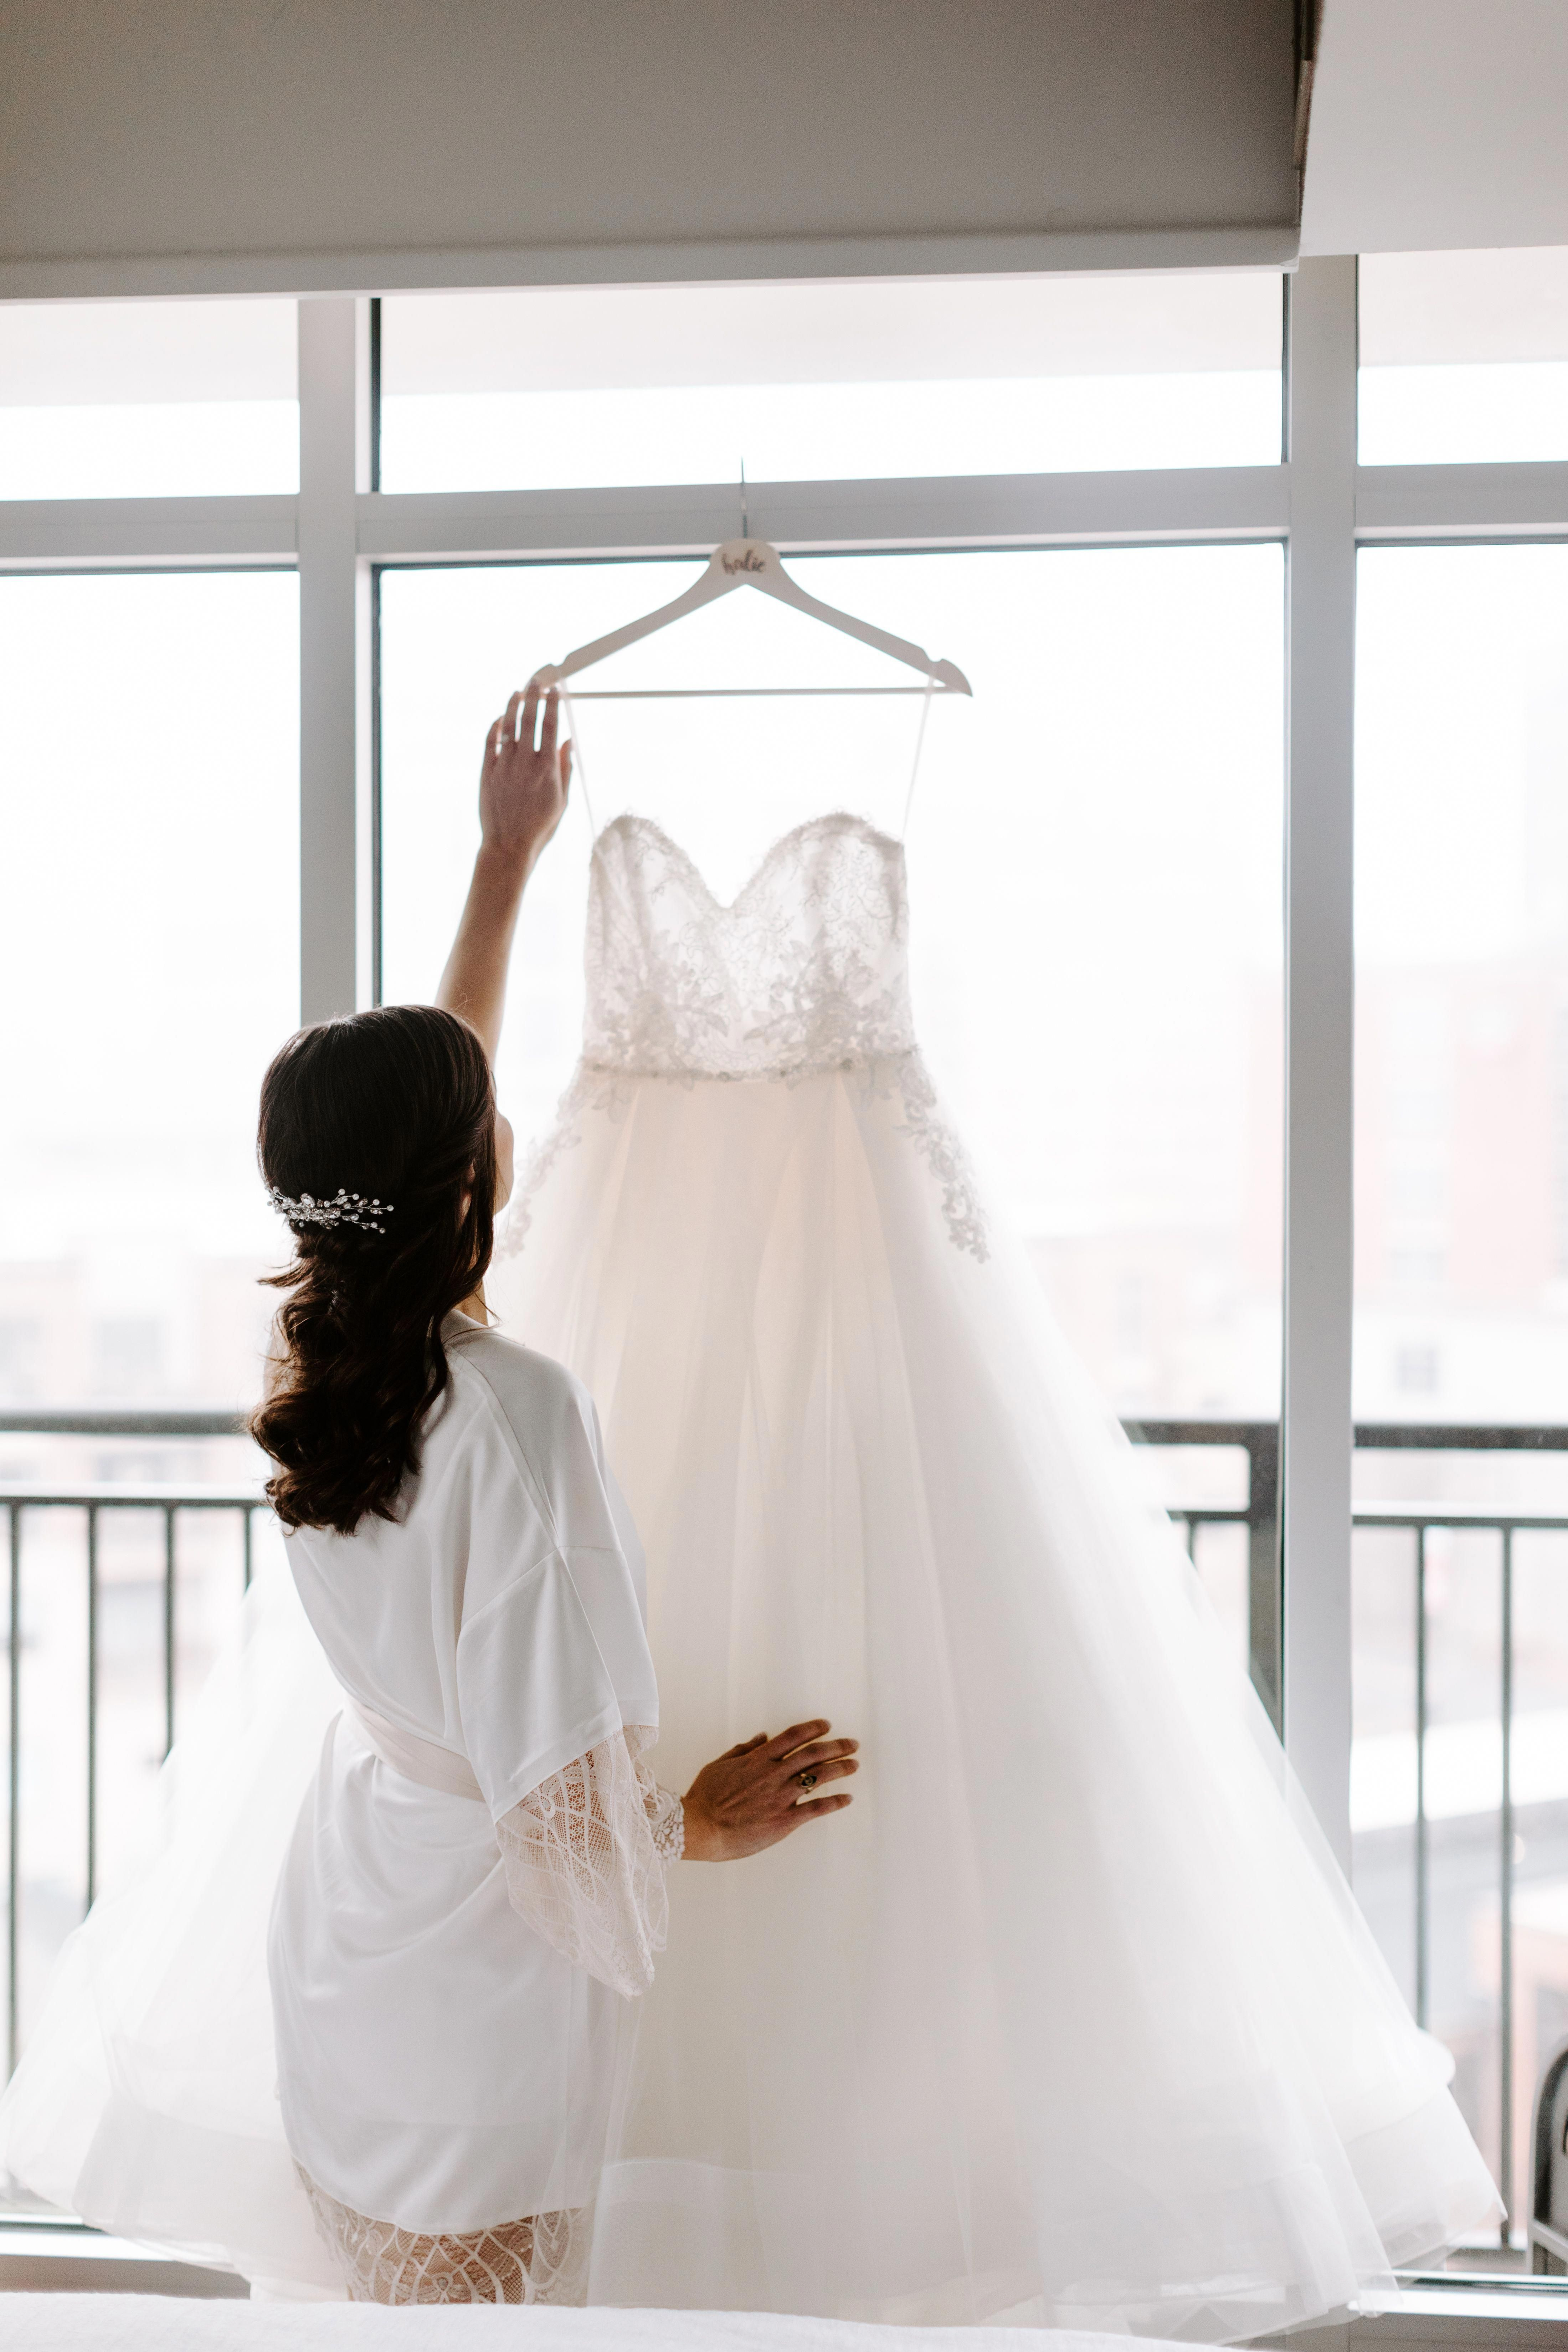 Bride getting ready on wedding day. Wedding dress picture